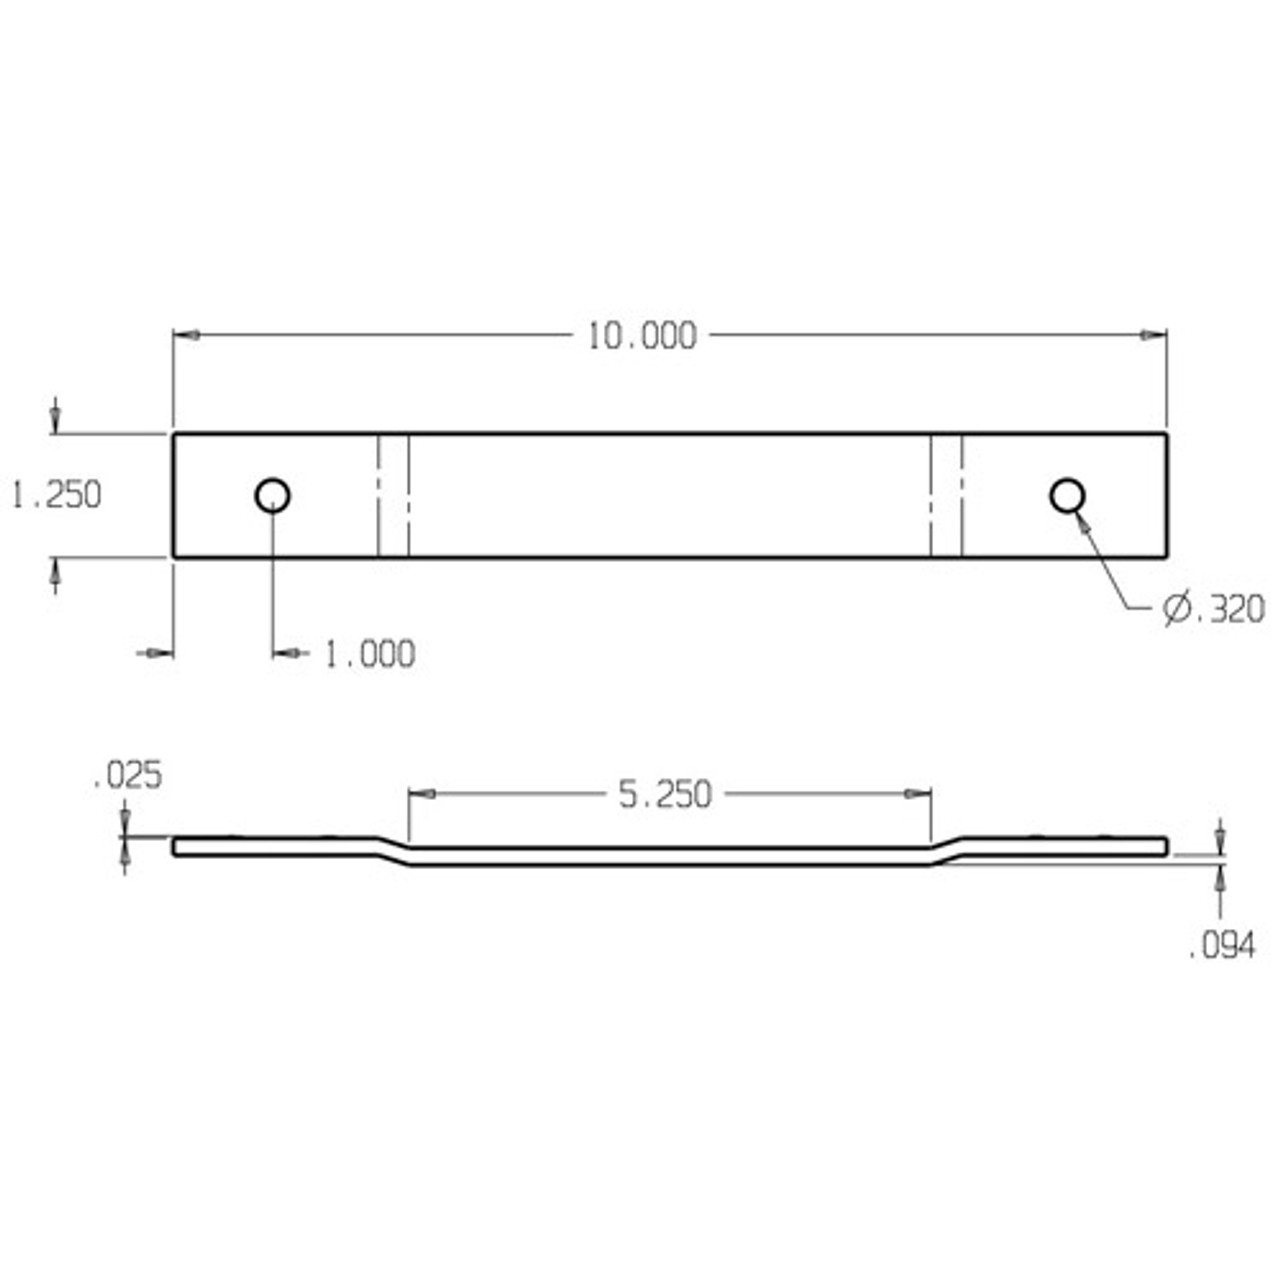 hight resolution of hr 200 4 1 2 don jo blank hinge reinforcement dimensional view